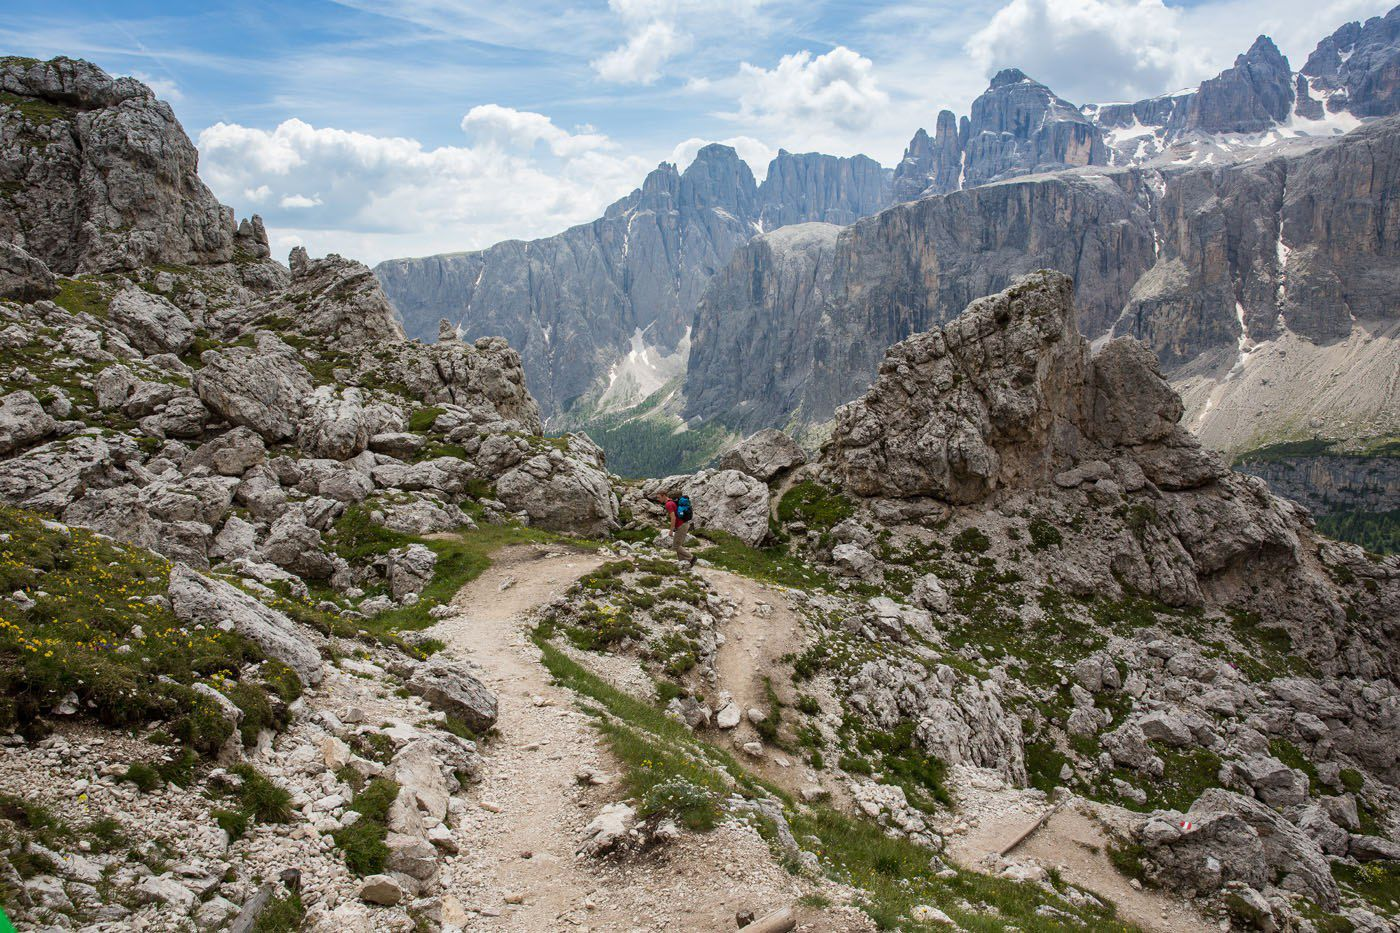 Dolomites Hiking Trail